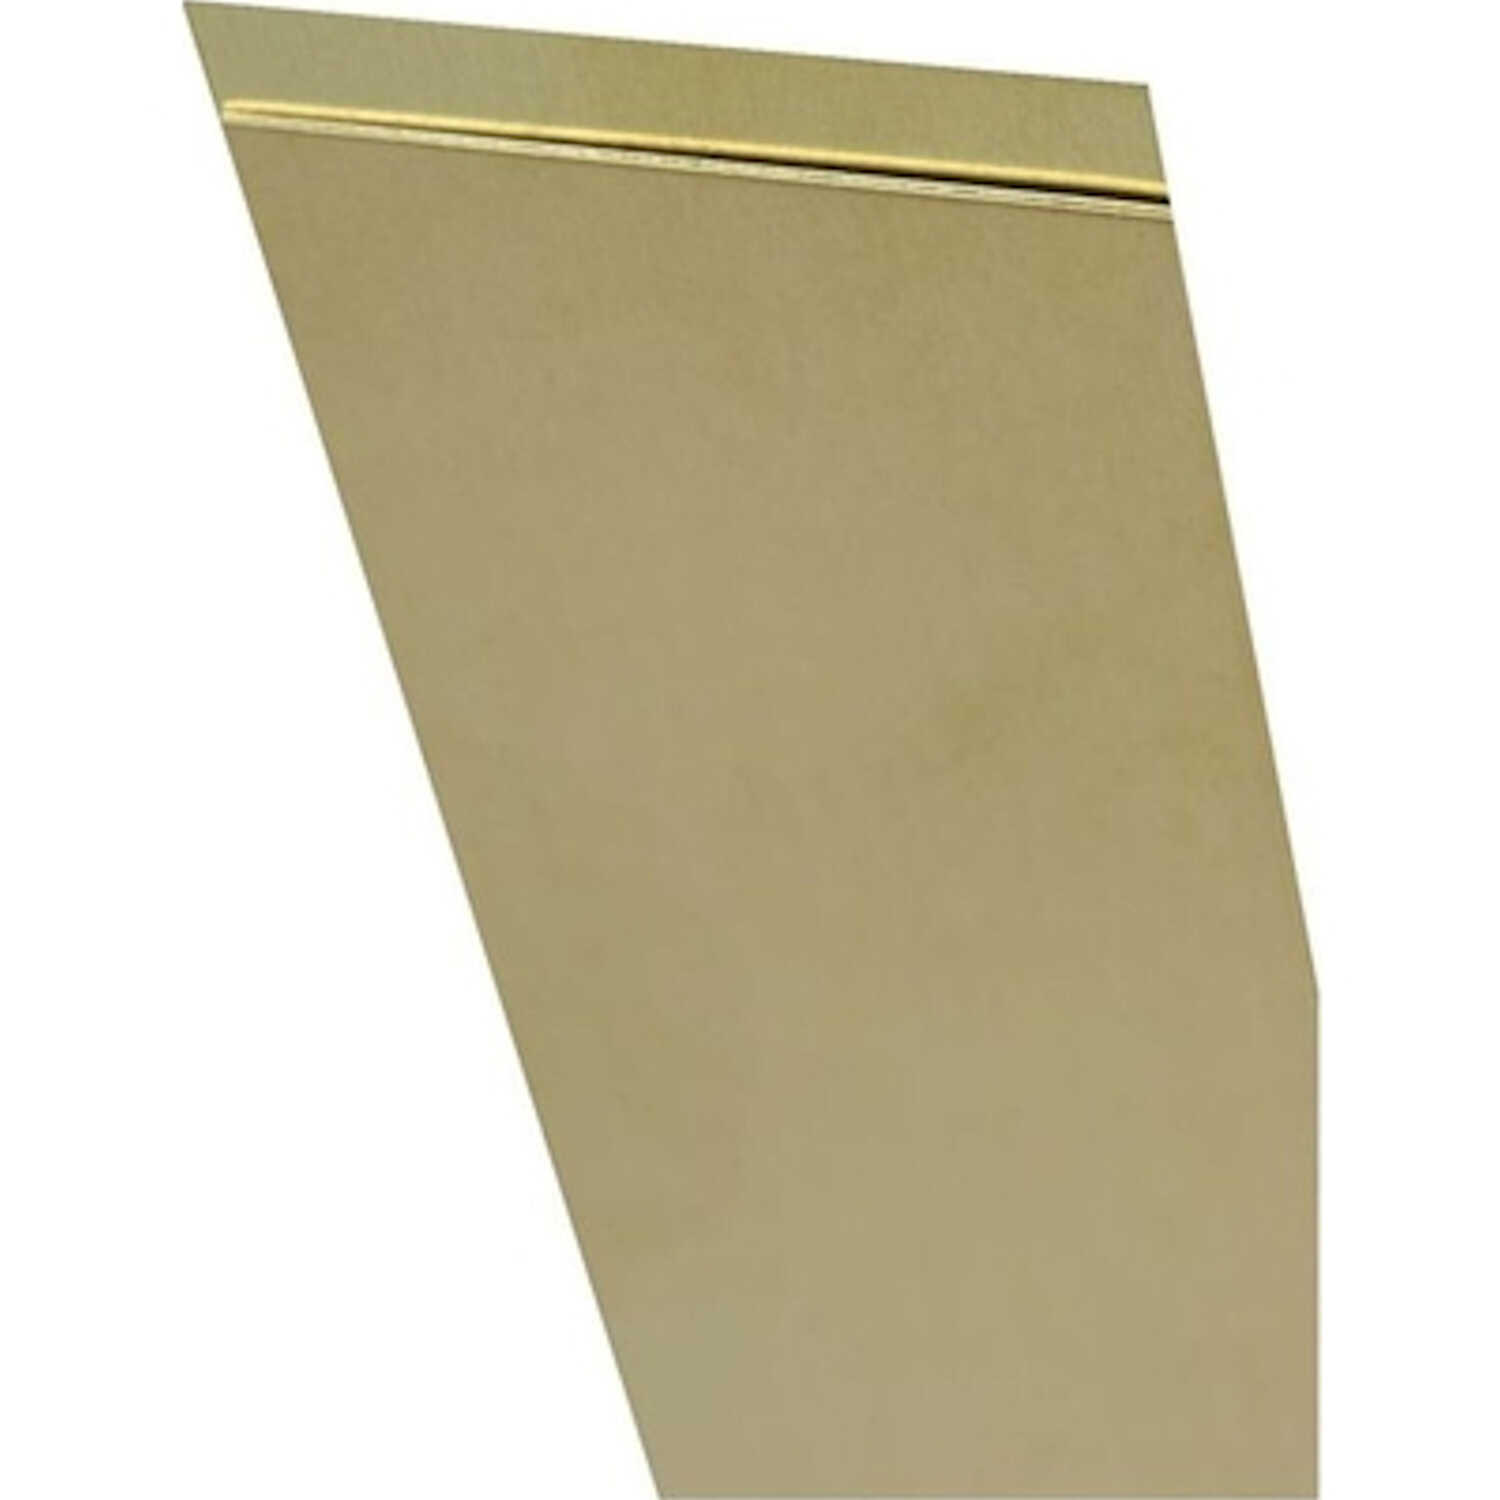 K&S  0.016 in.  x 2 in. W x 12 in. L Brass  Metal Strip